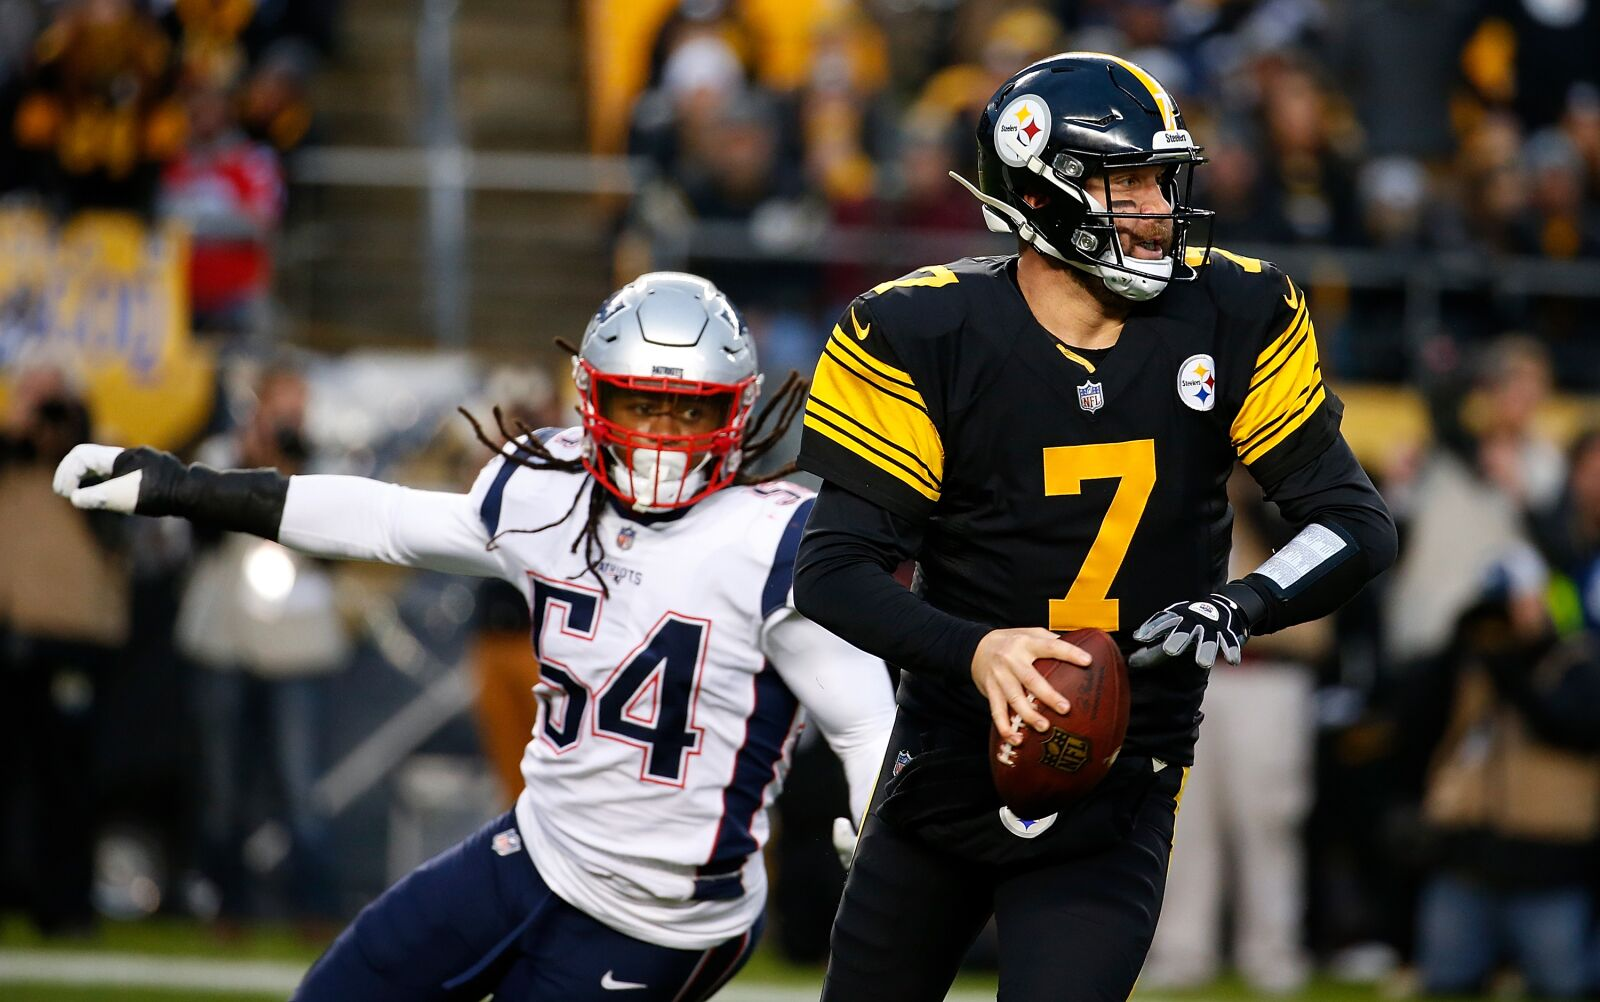 ae076968 New England Patriots: Full 2019 NFL schedule released